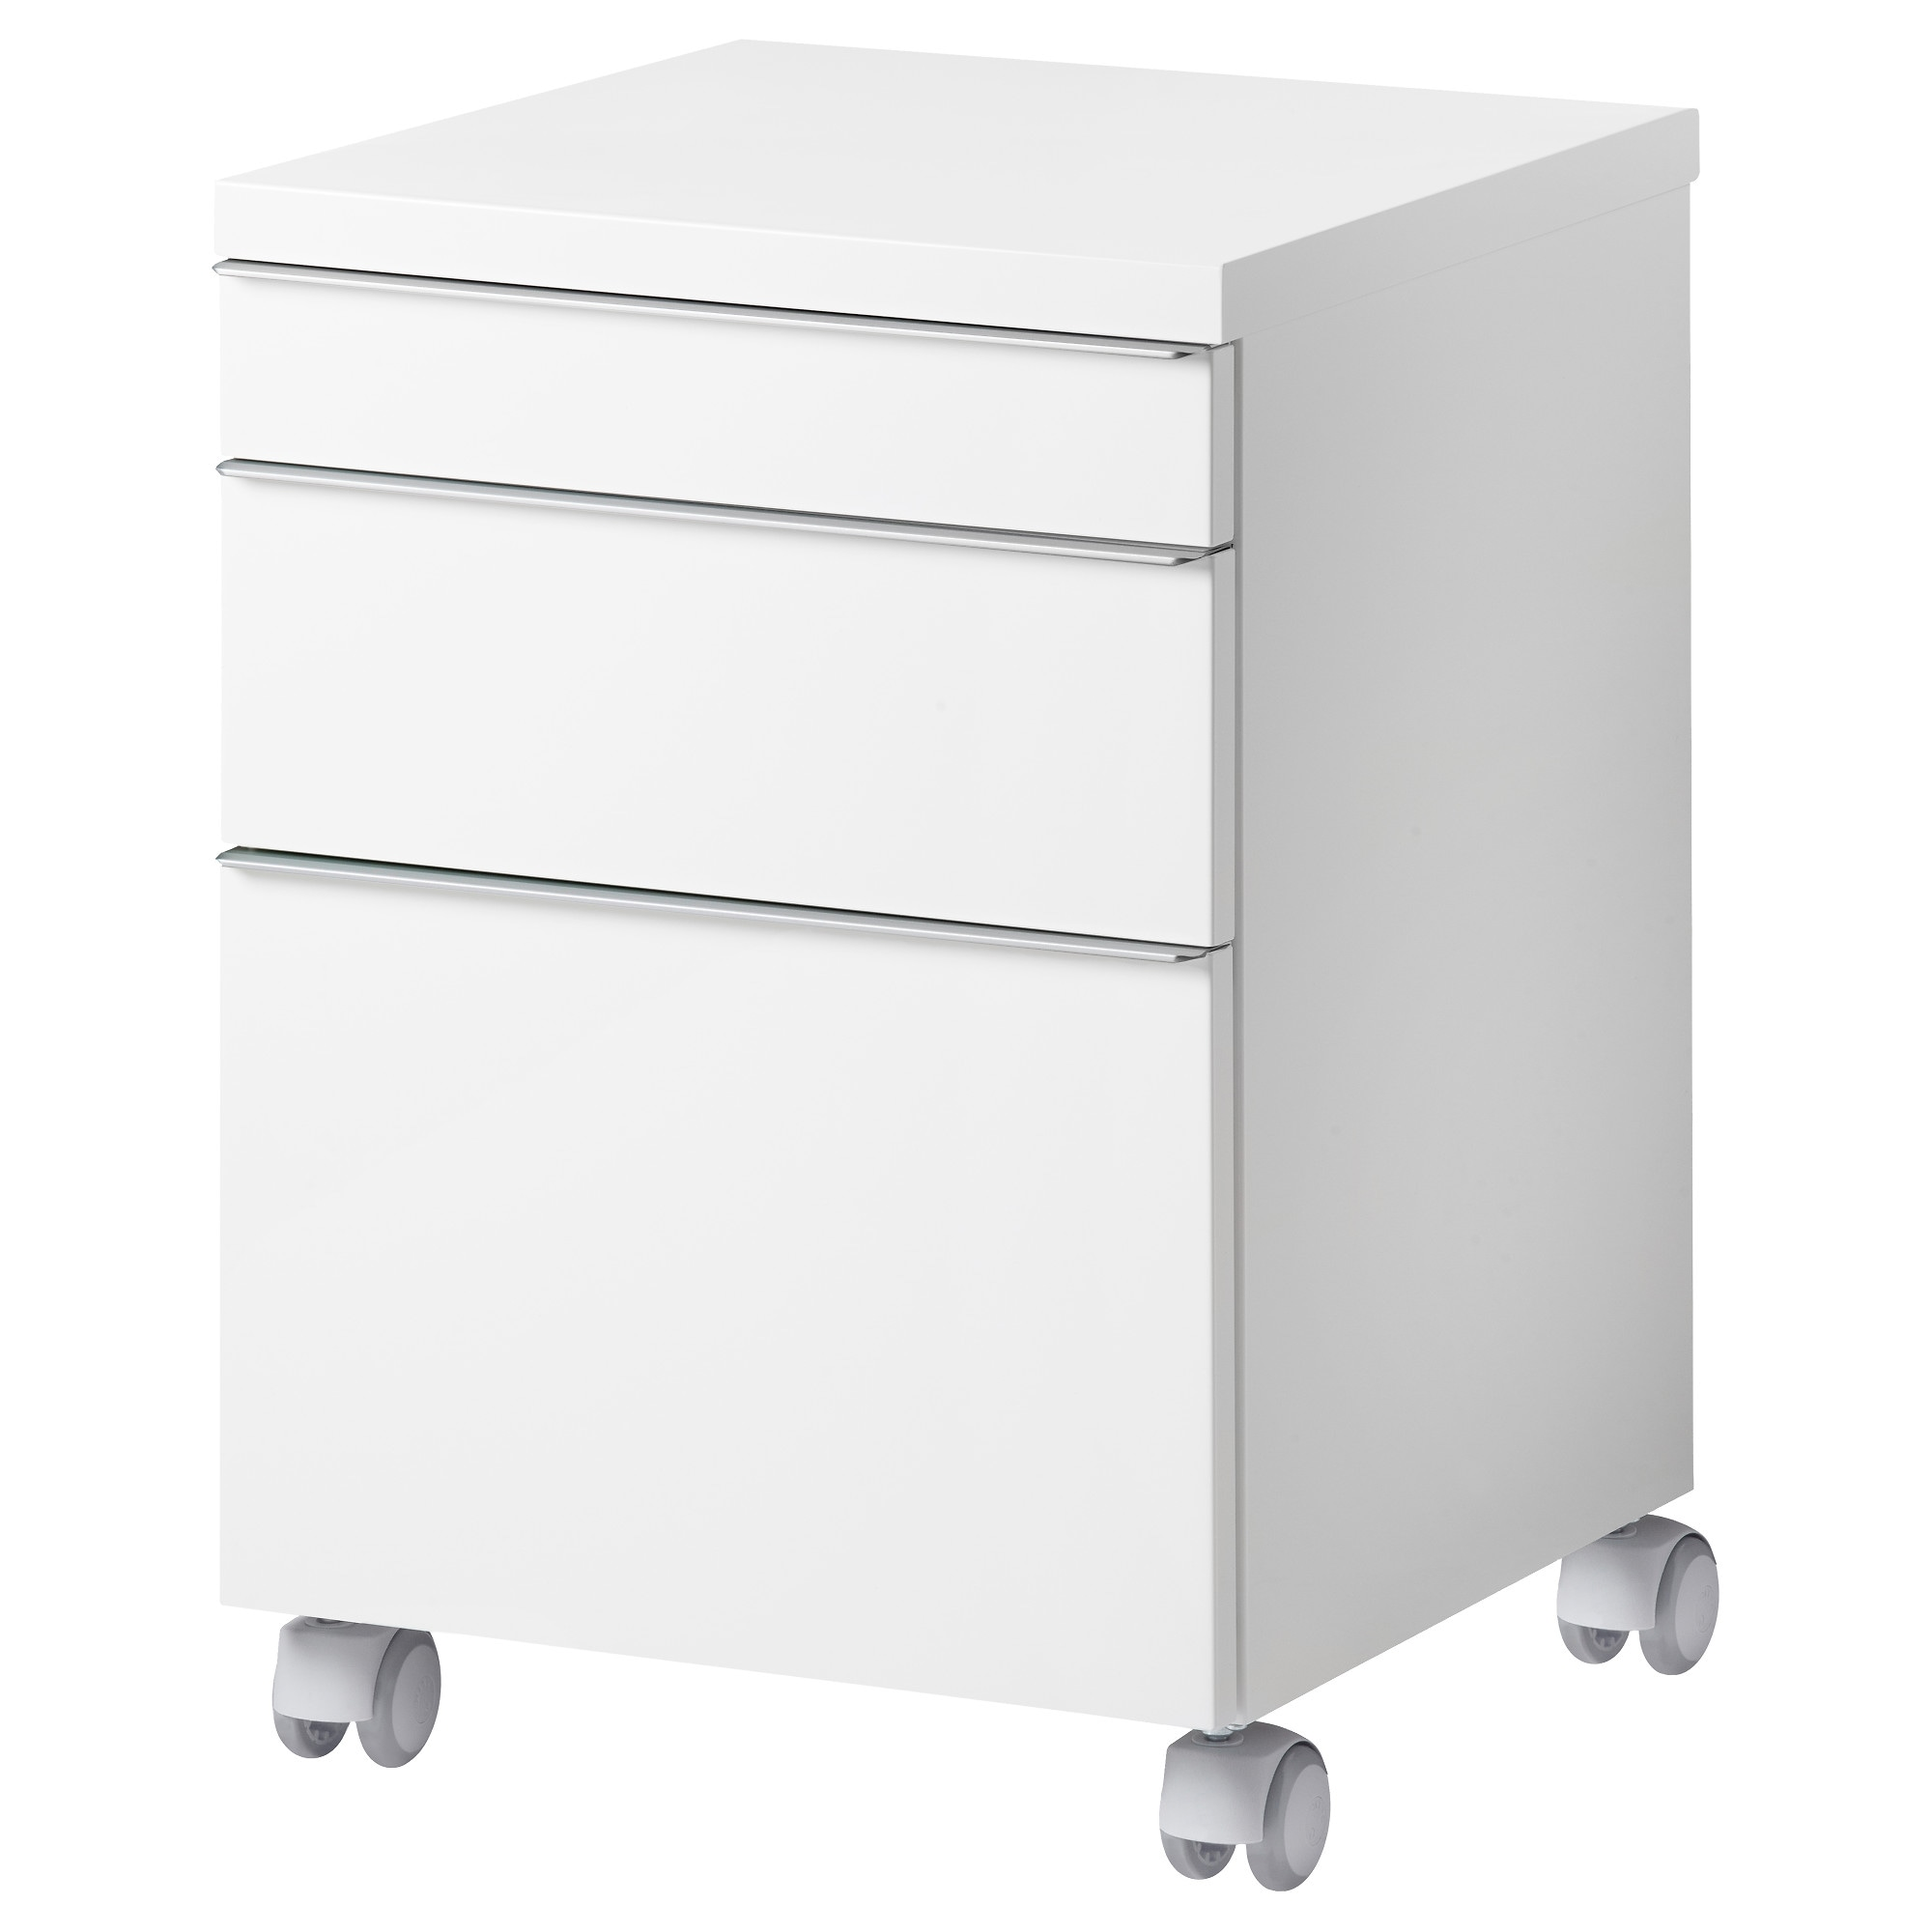 Ikea Aspelund Dresser Reviews ~ fr catalog categories departments workspaces